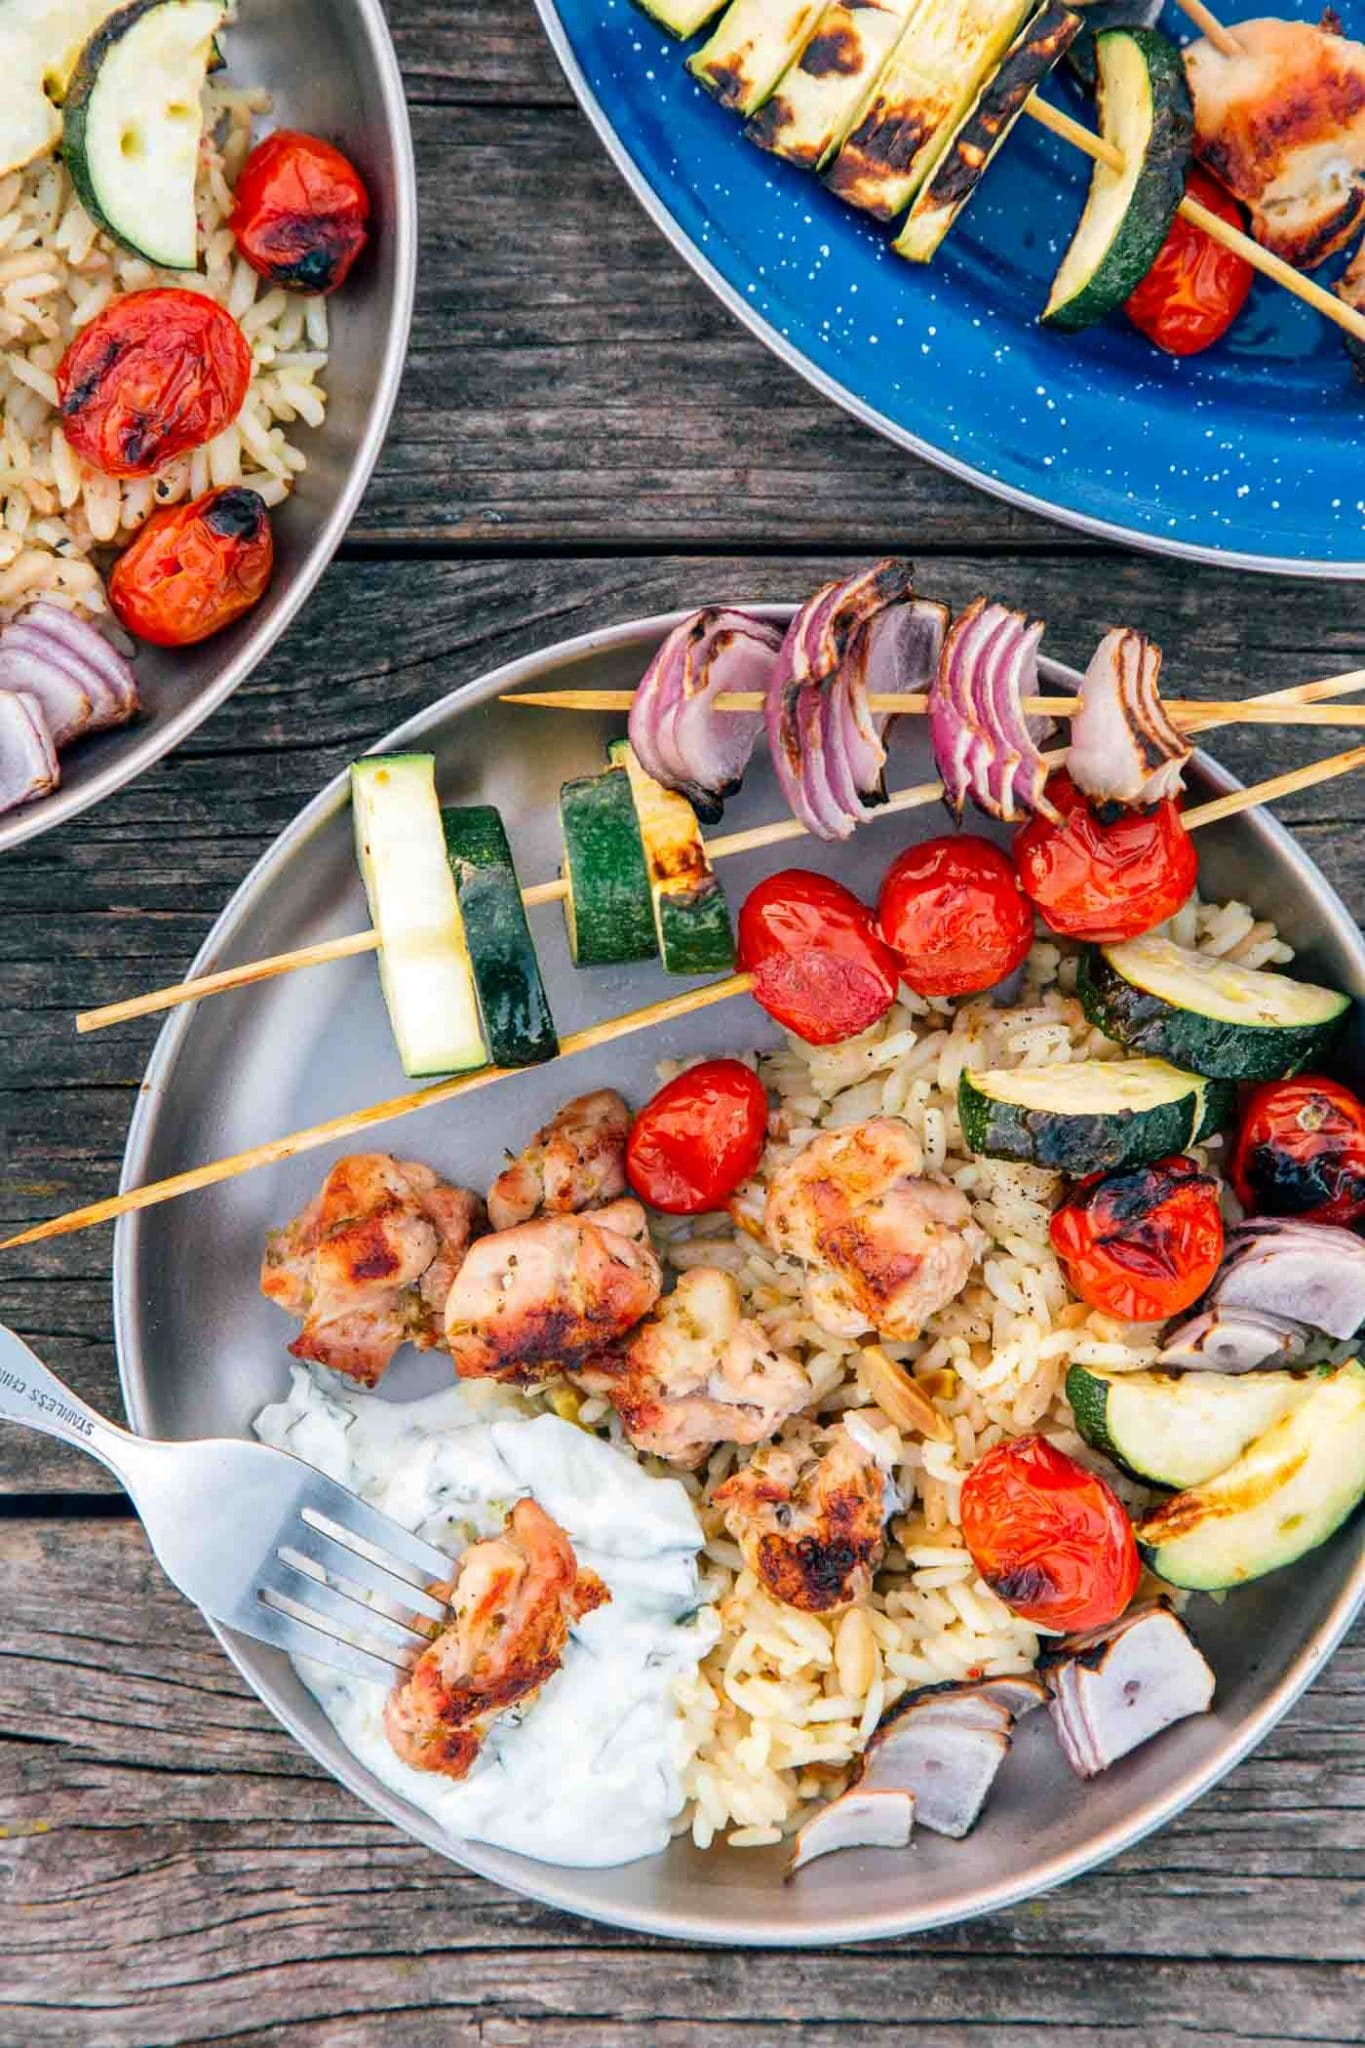 Grilled chicken and vegetable skewers with tzatziki sauce on a plate